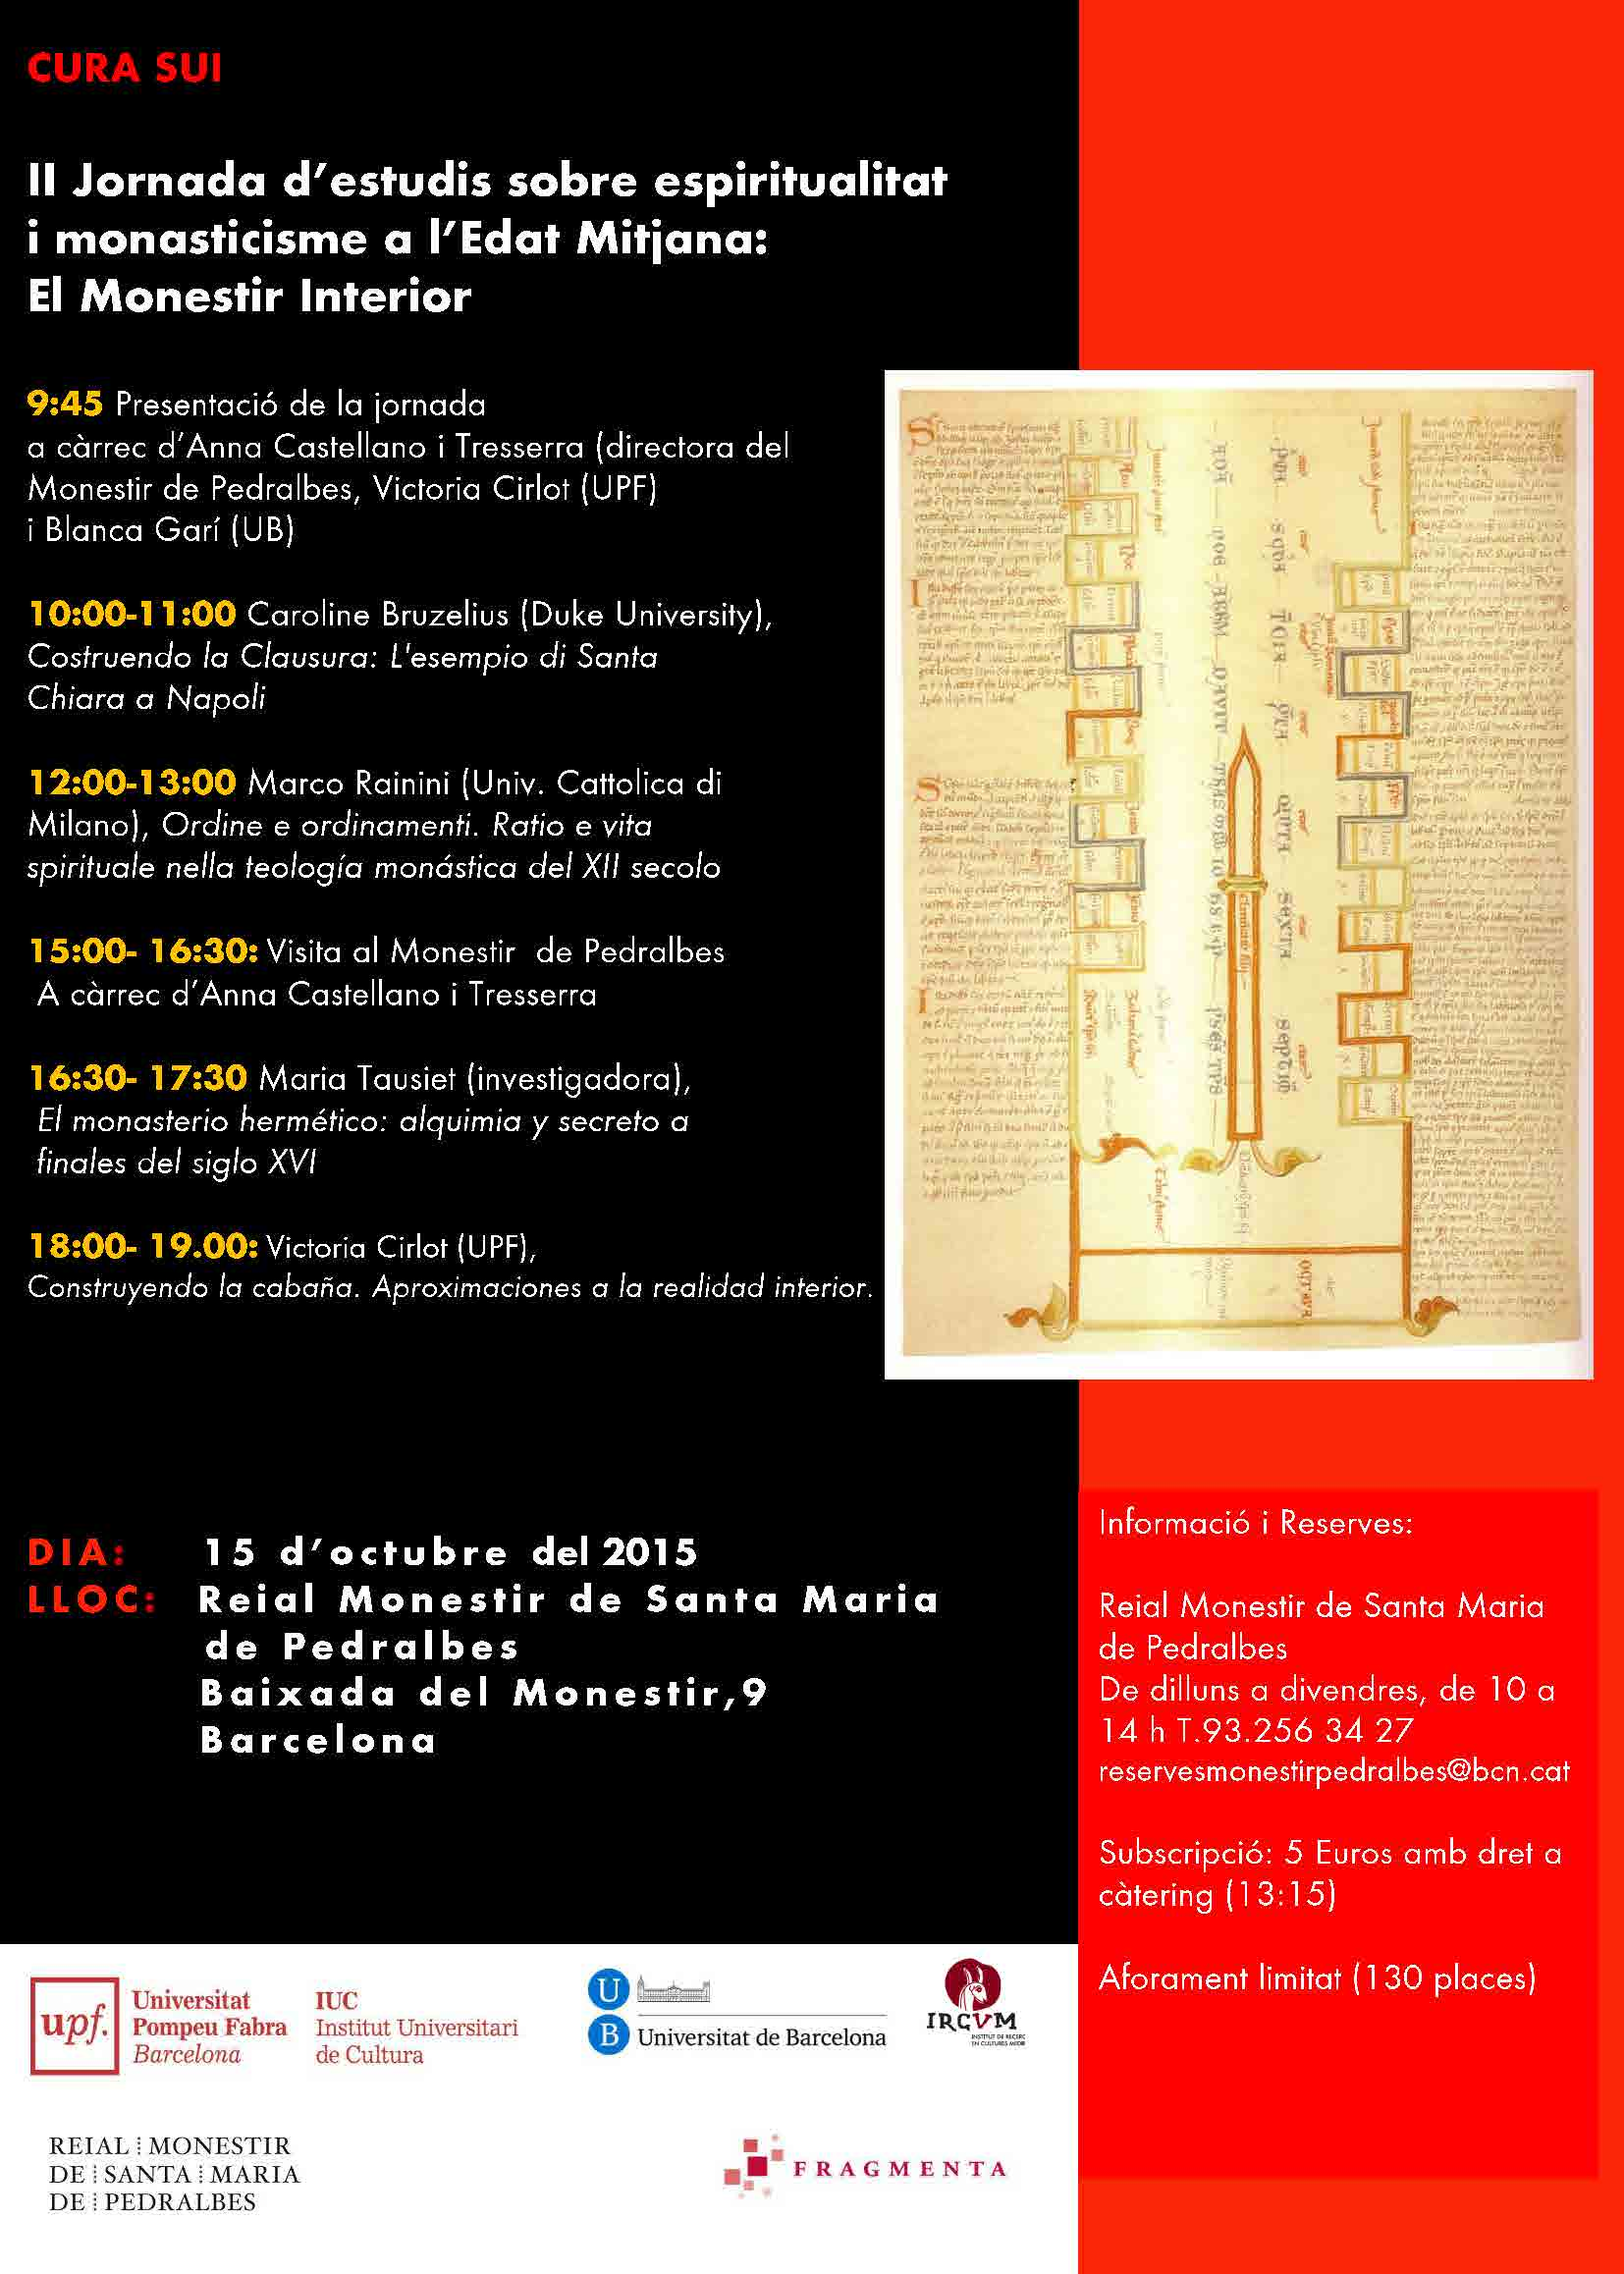 II Seminar on Medieval Spirituality and Monasticism